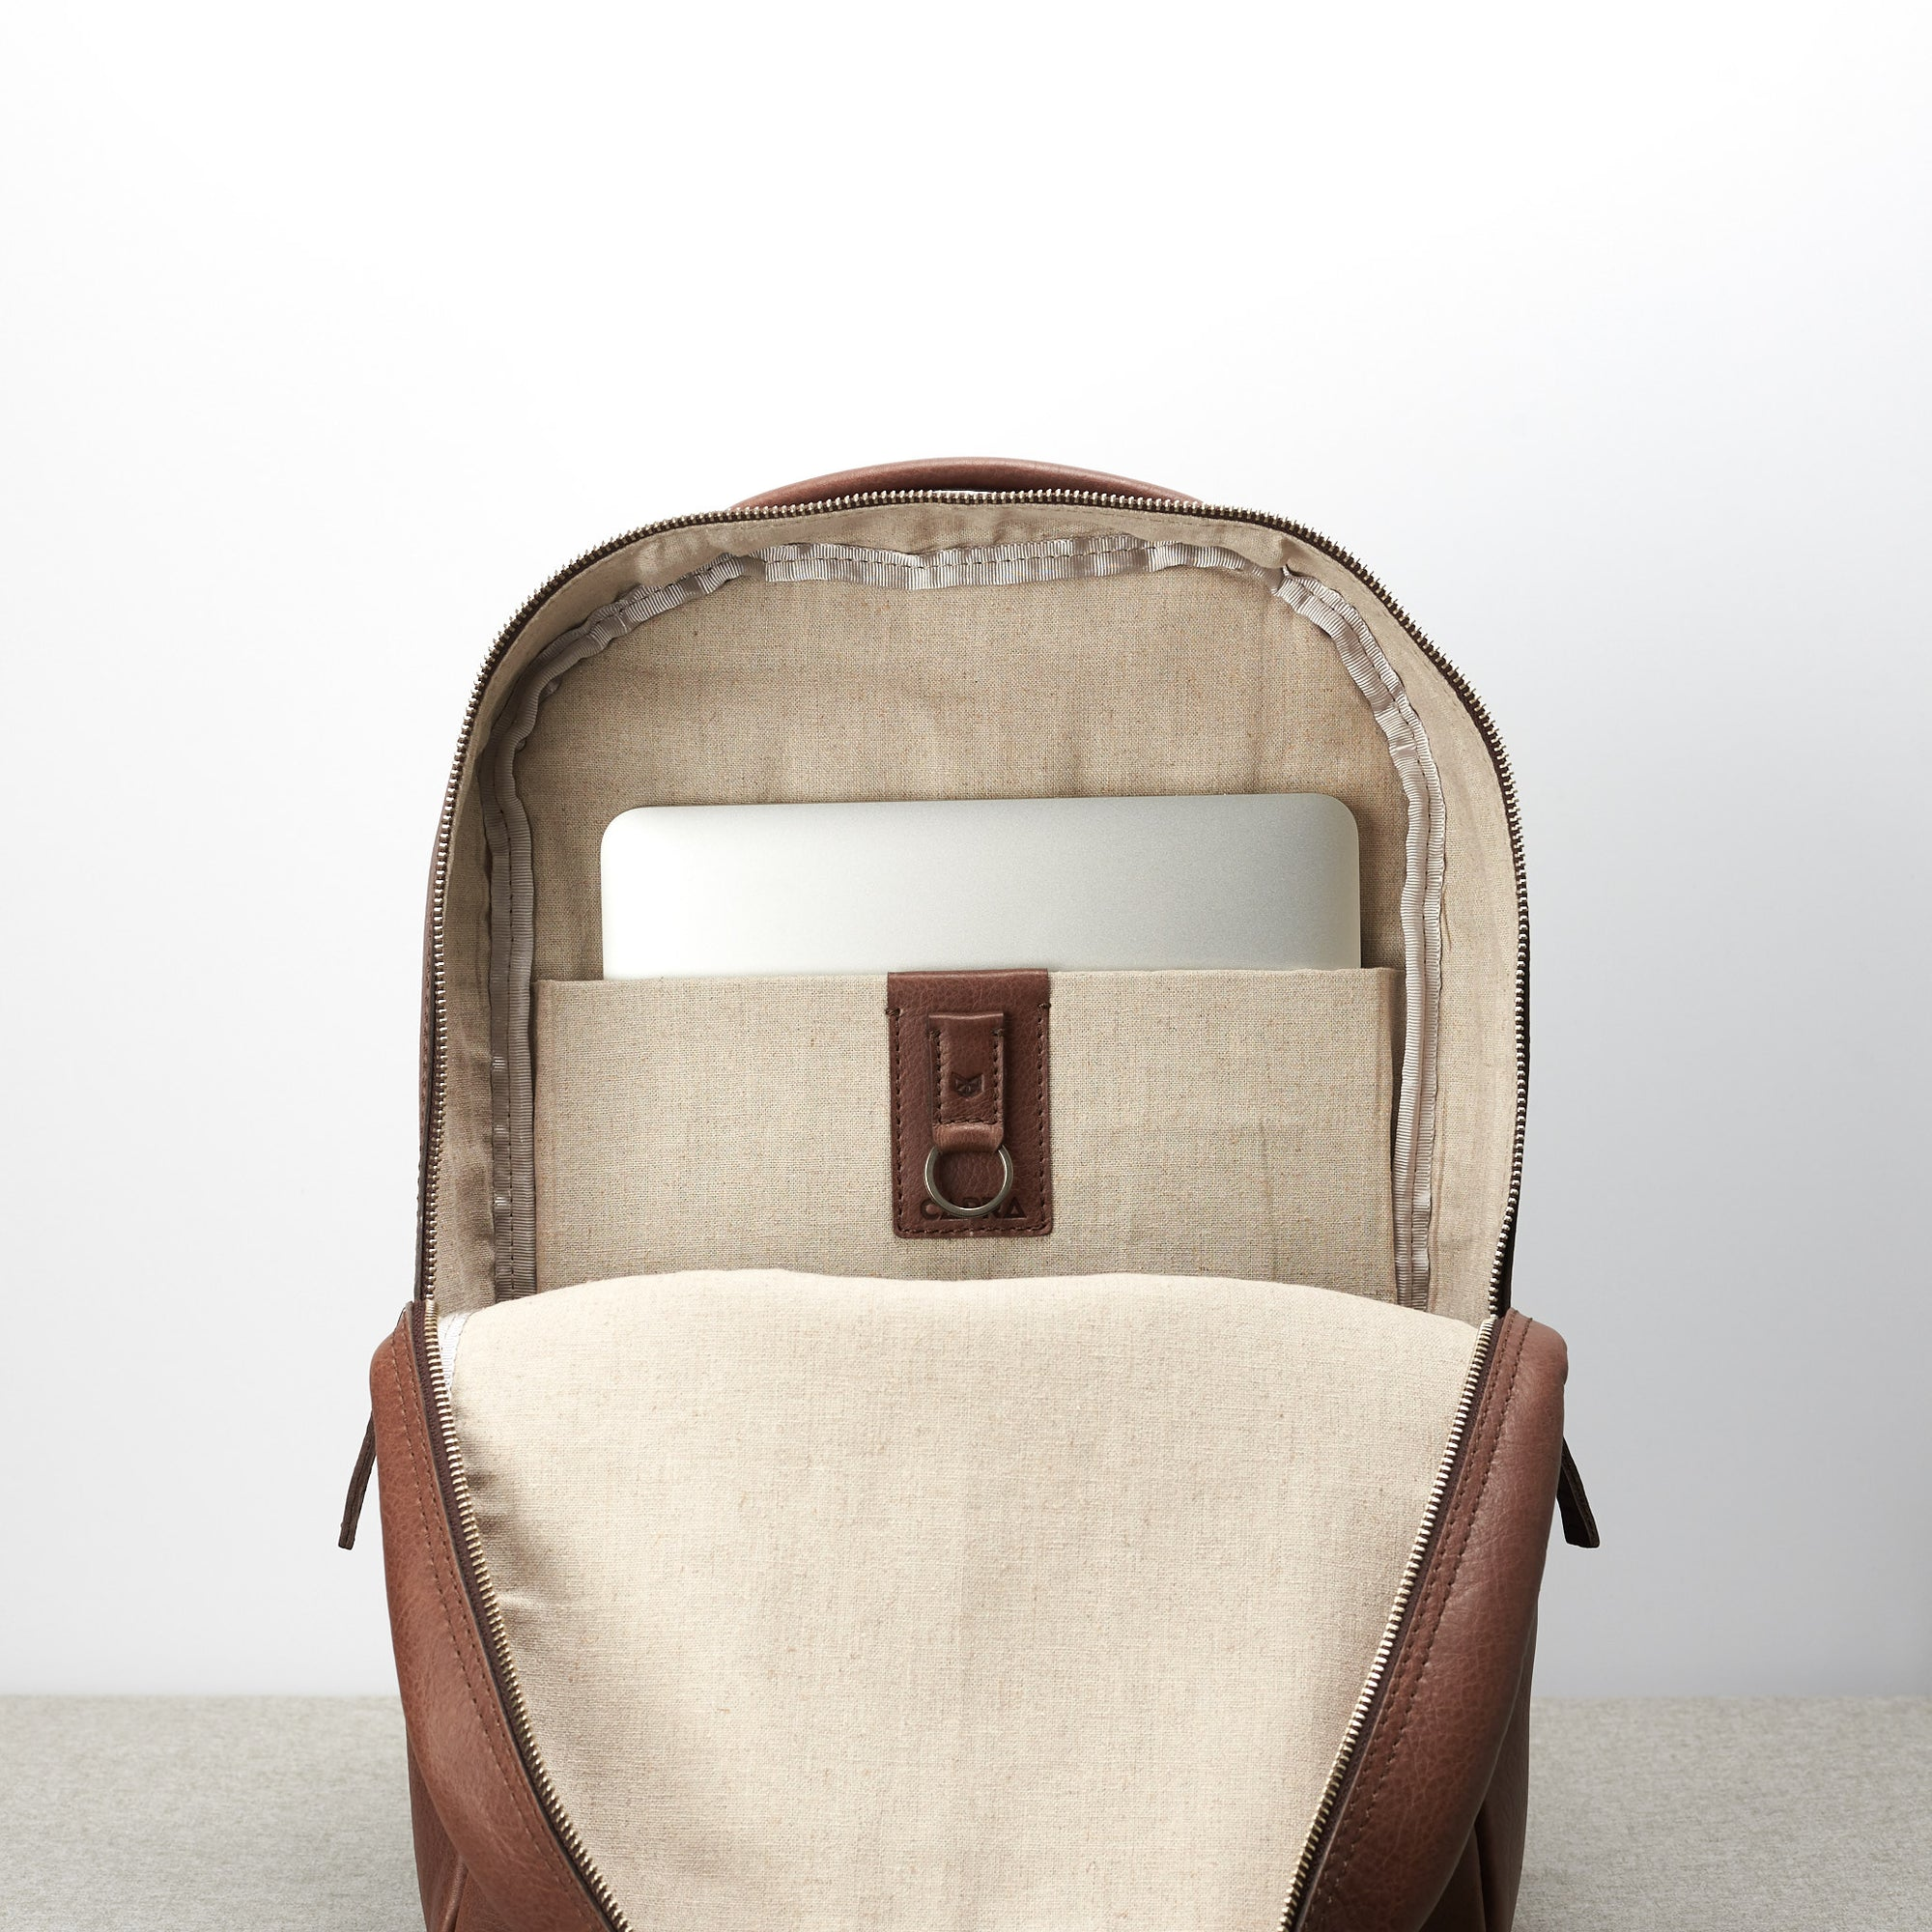 Minimalist brown leather backpack for men. Handmade full grain leather rucksack